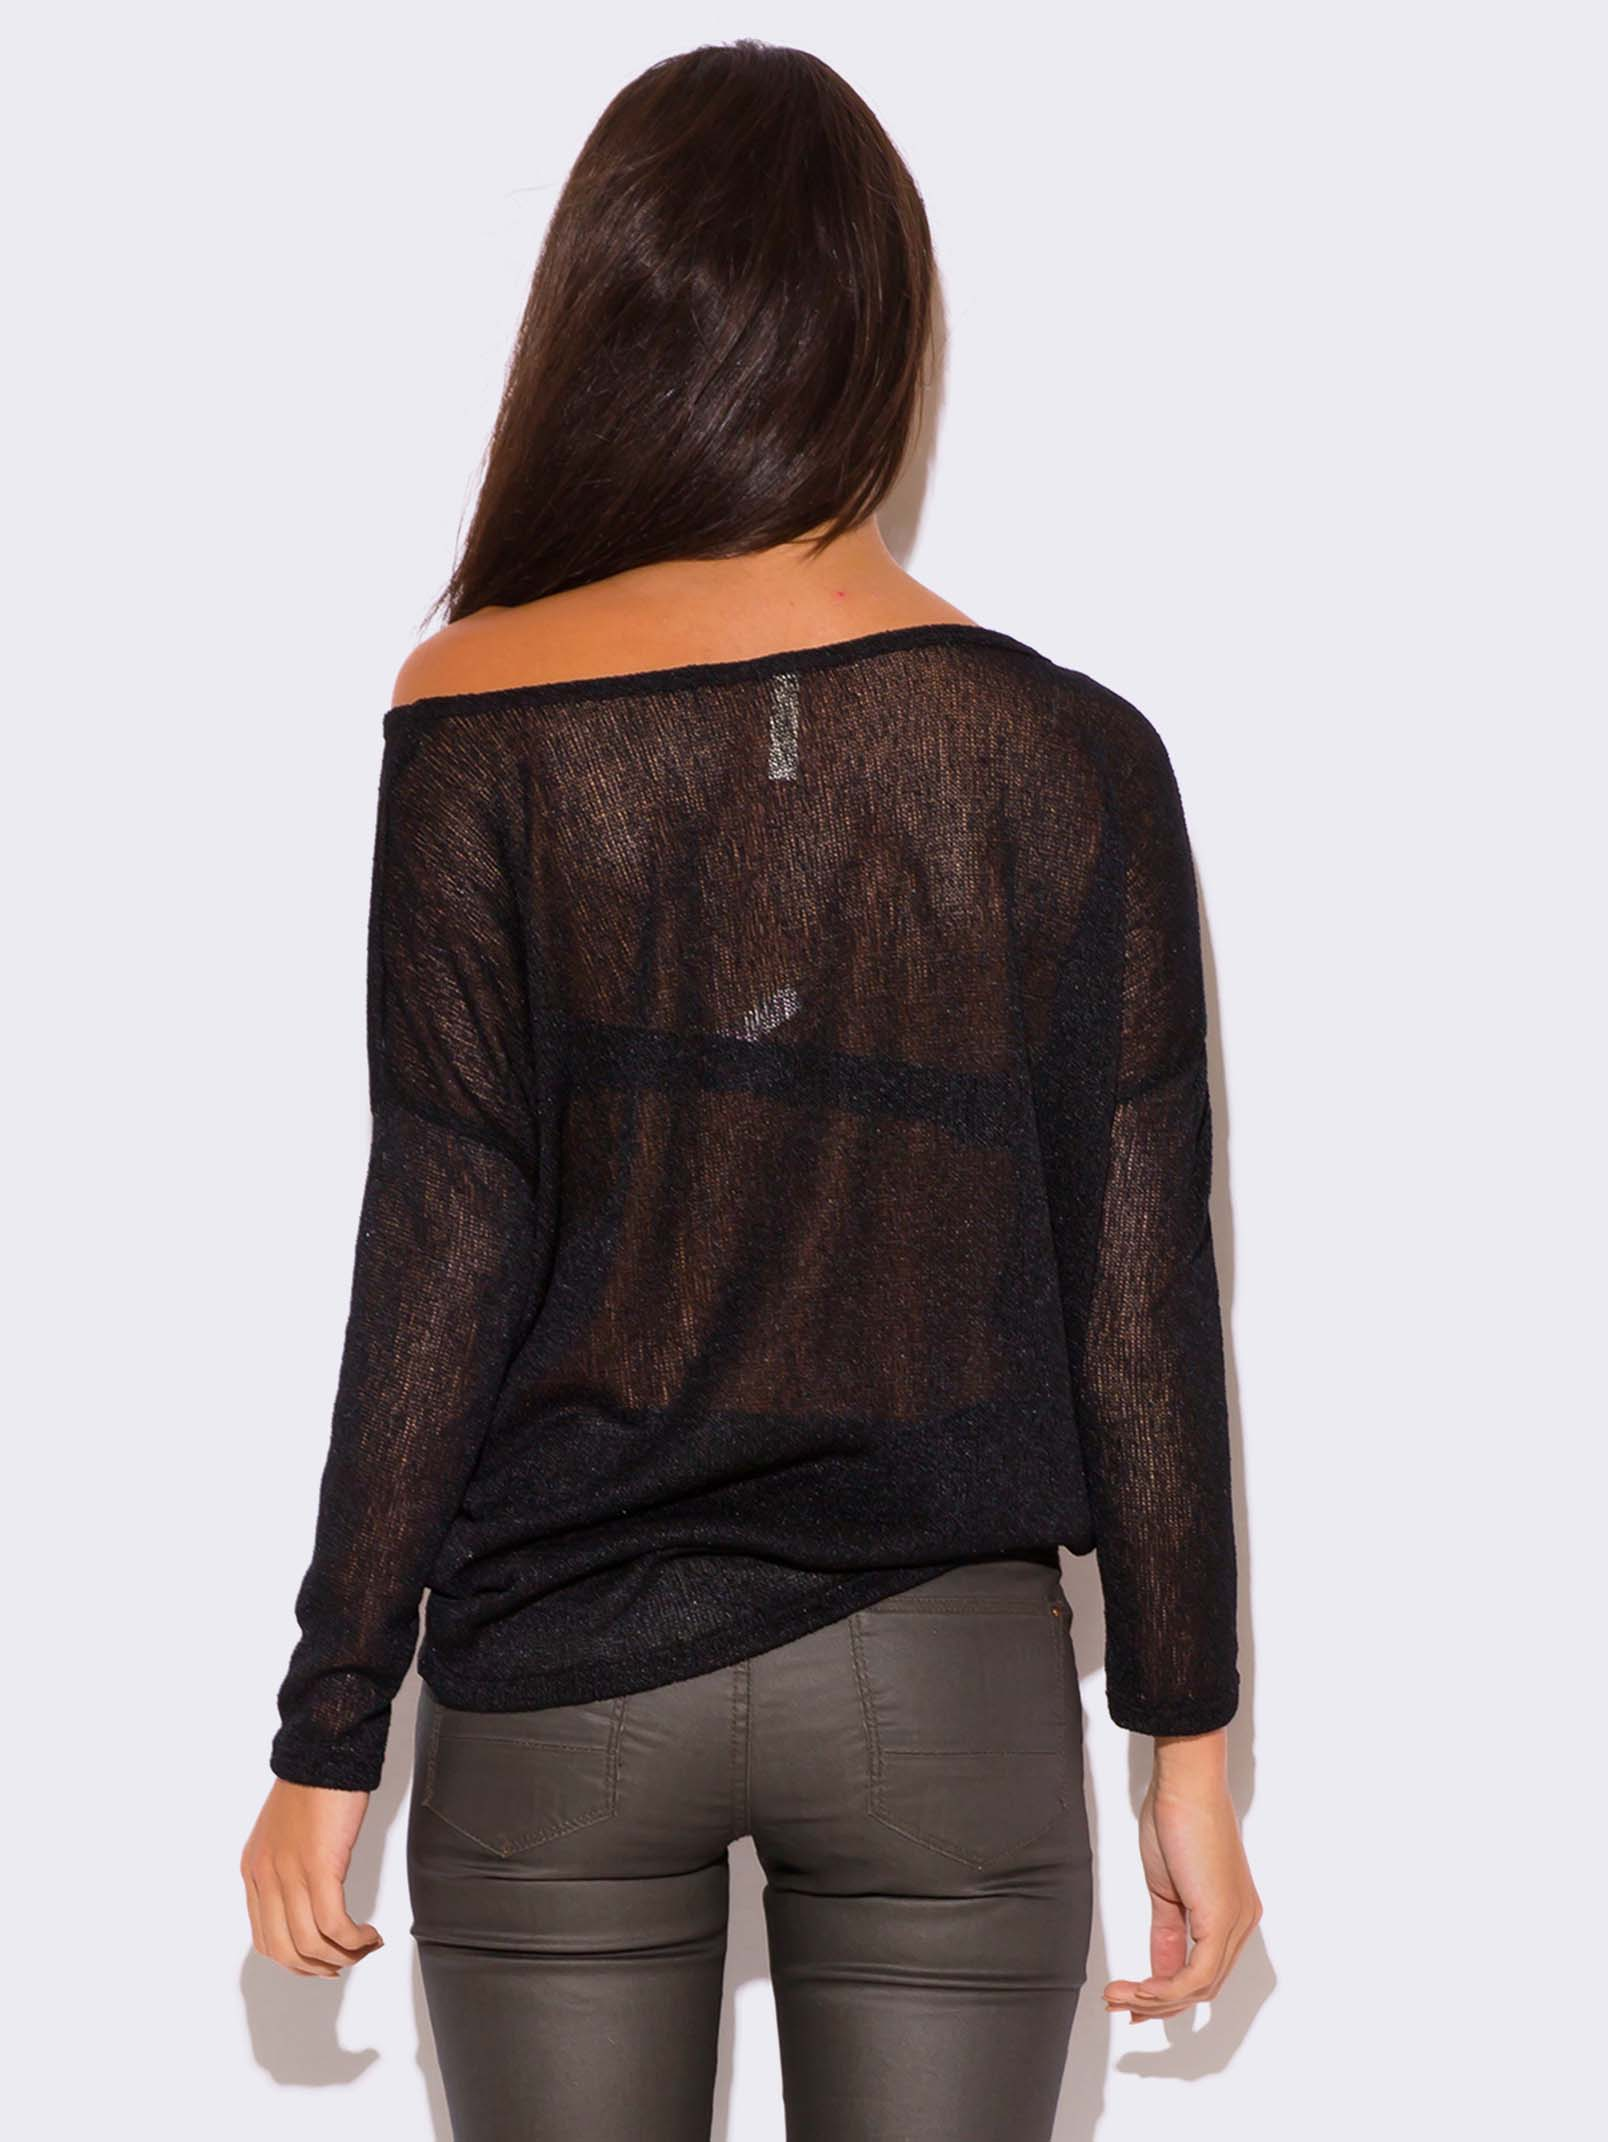 BLACK LONG SLEEVE SHEER KNIT SWEATER TOP - ModishOnline.com